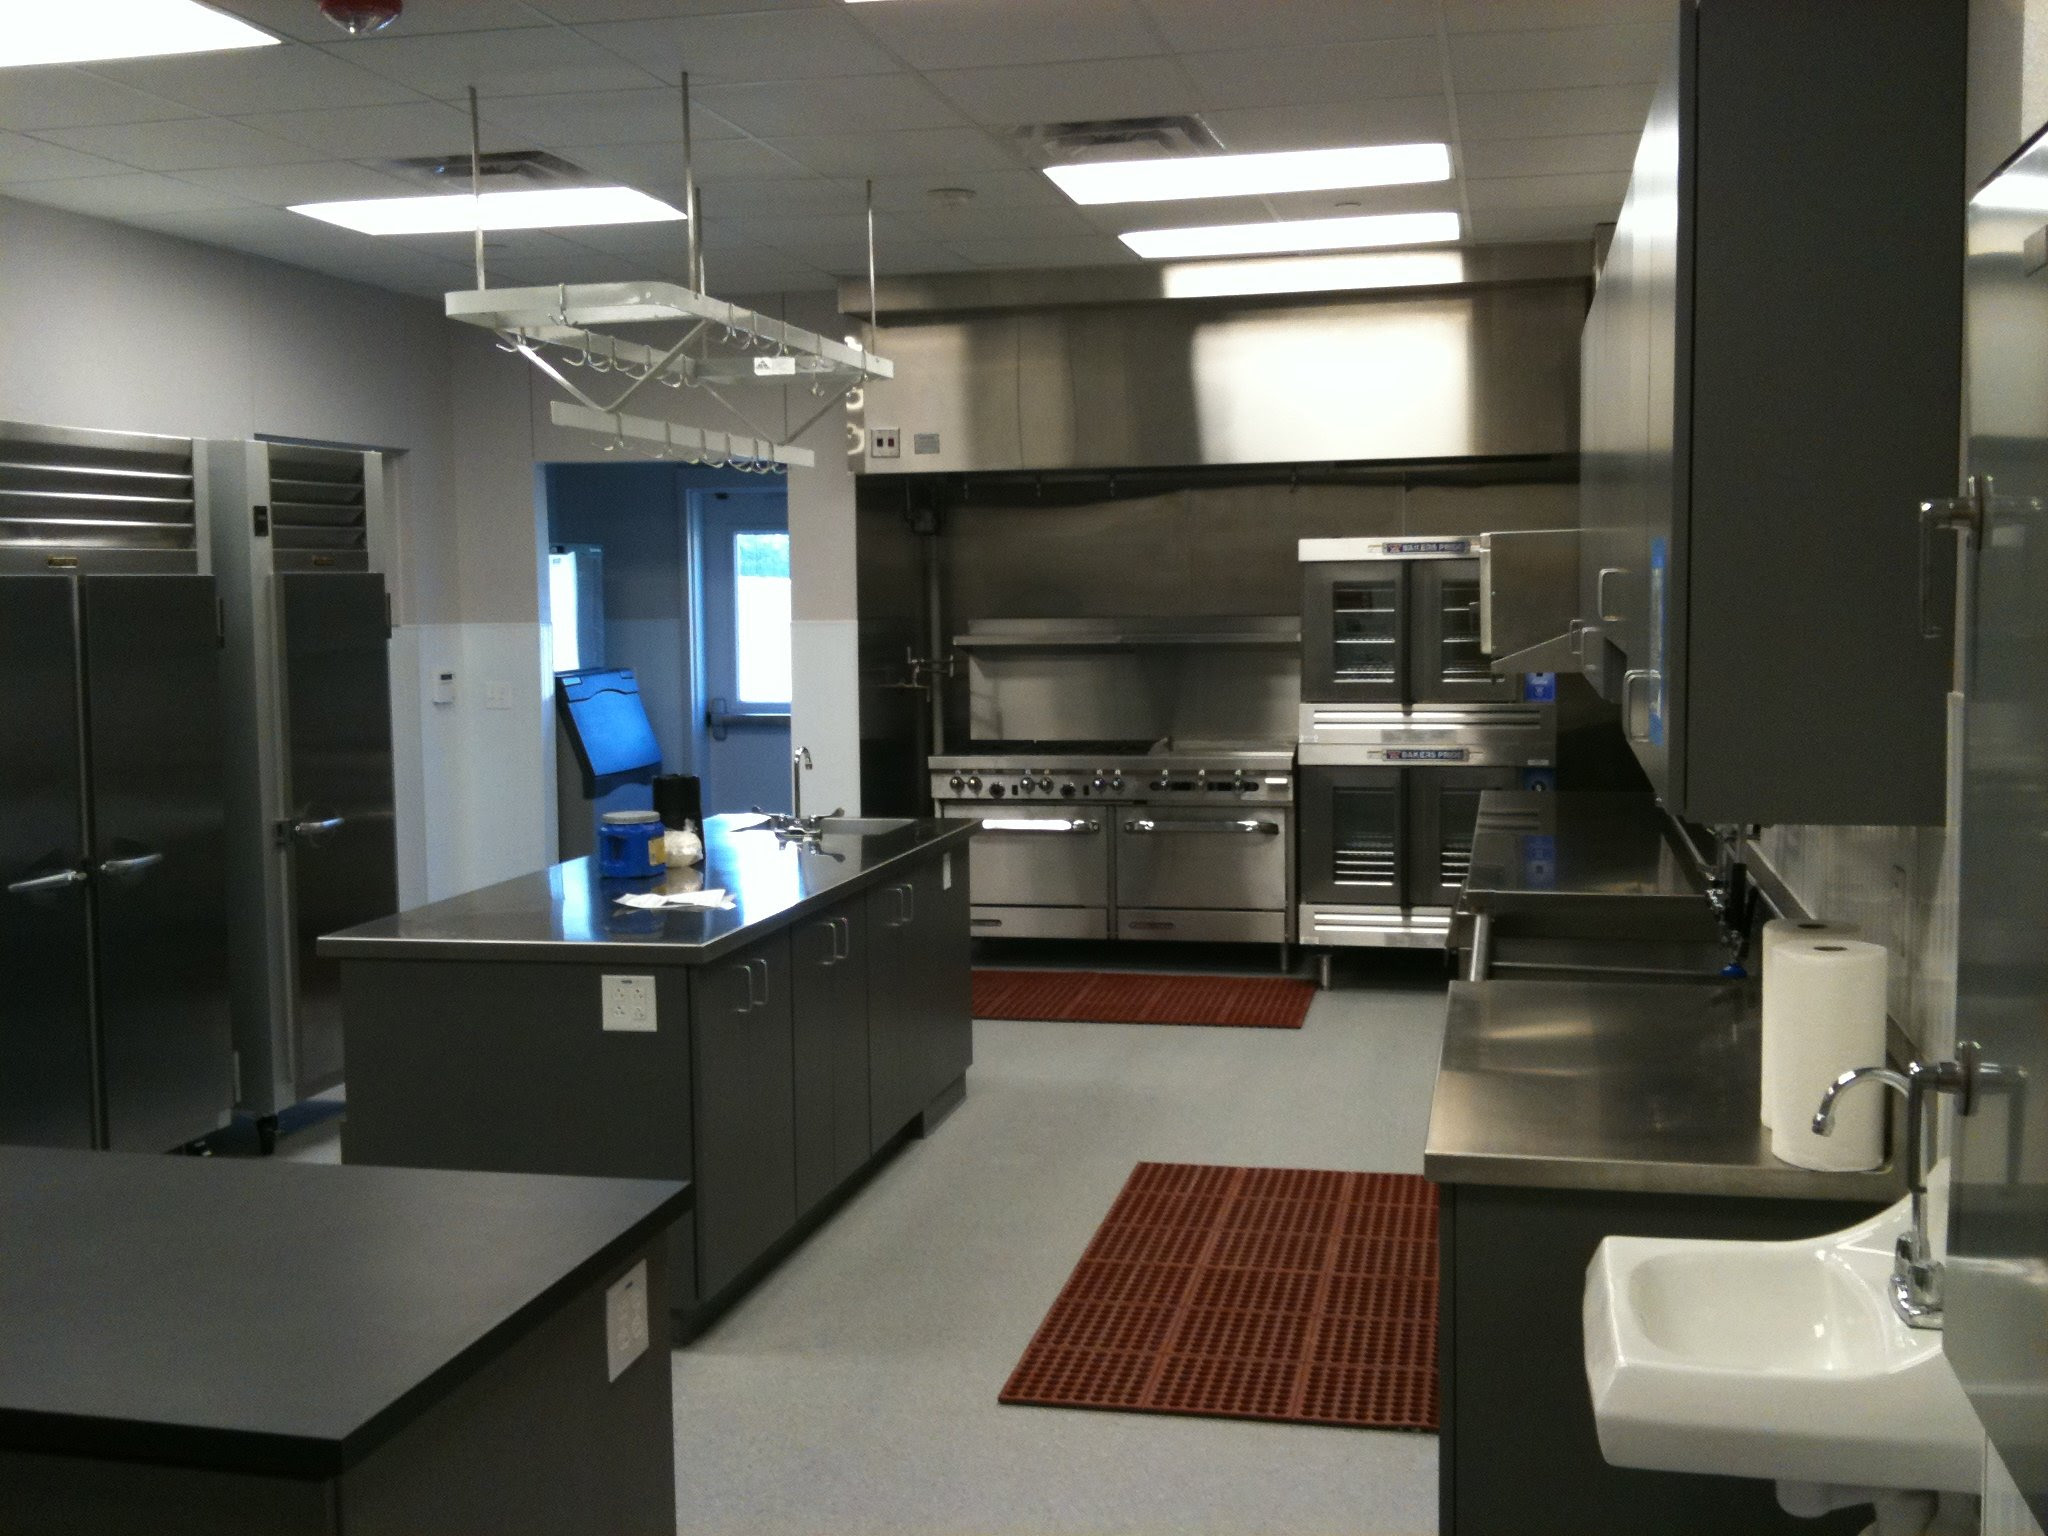 Kitchen Design For Catering Business Commercial Kitchen Architectural Plan Favorite Kitchen Designs Kitchen Weapons Catering